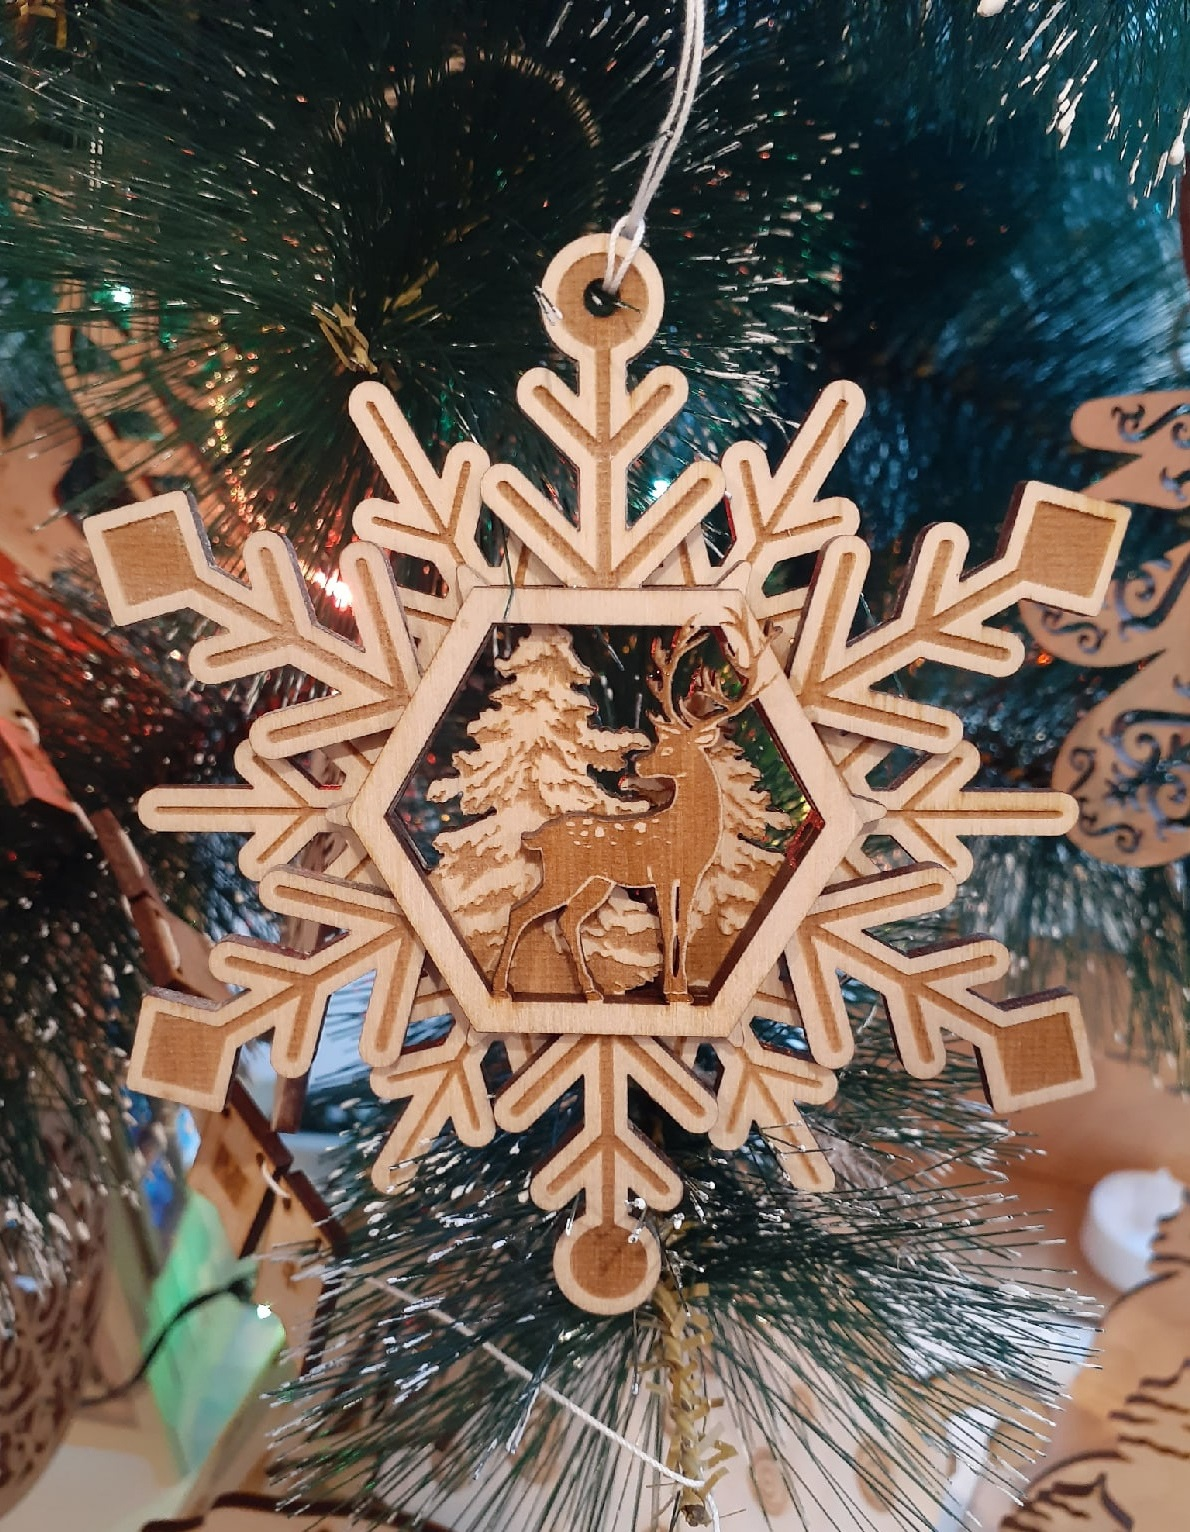 Laser Cut Wooden Deer Snowflakes Christmas Tree Toys Free Vector